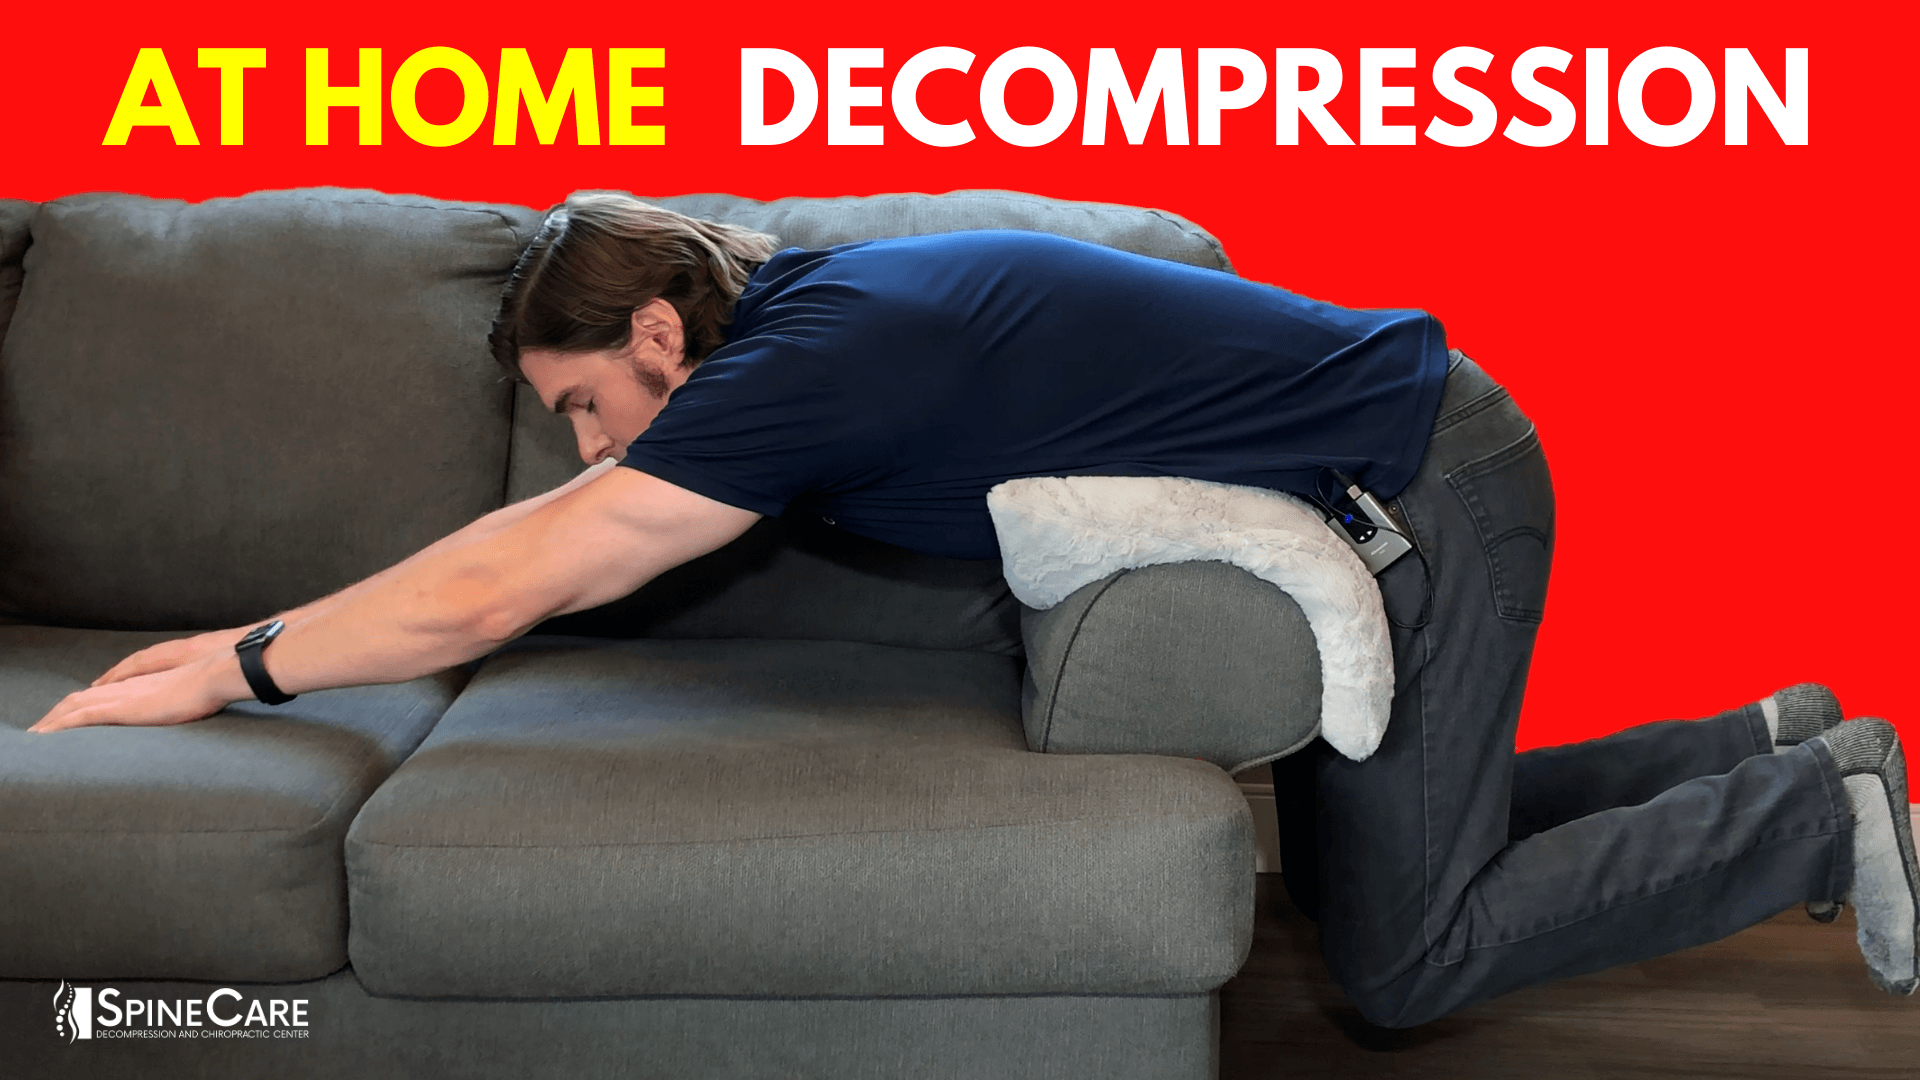 Top Spinal Decompression Techniques Using Just a Couch | SpineCare | St. Joseph, Michigan Chiropractor